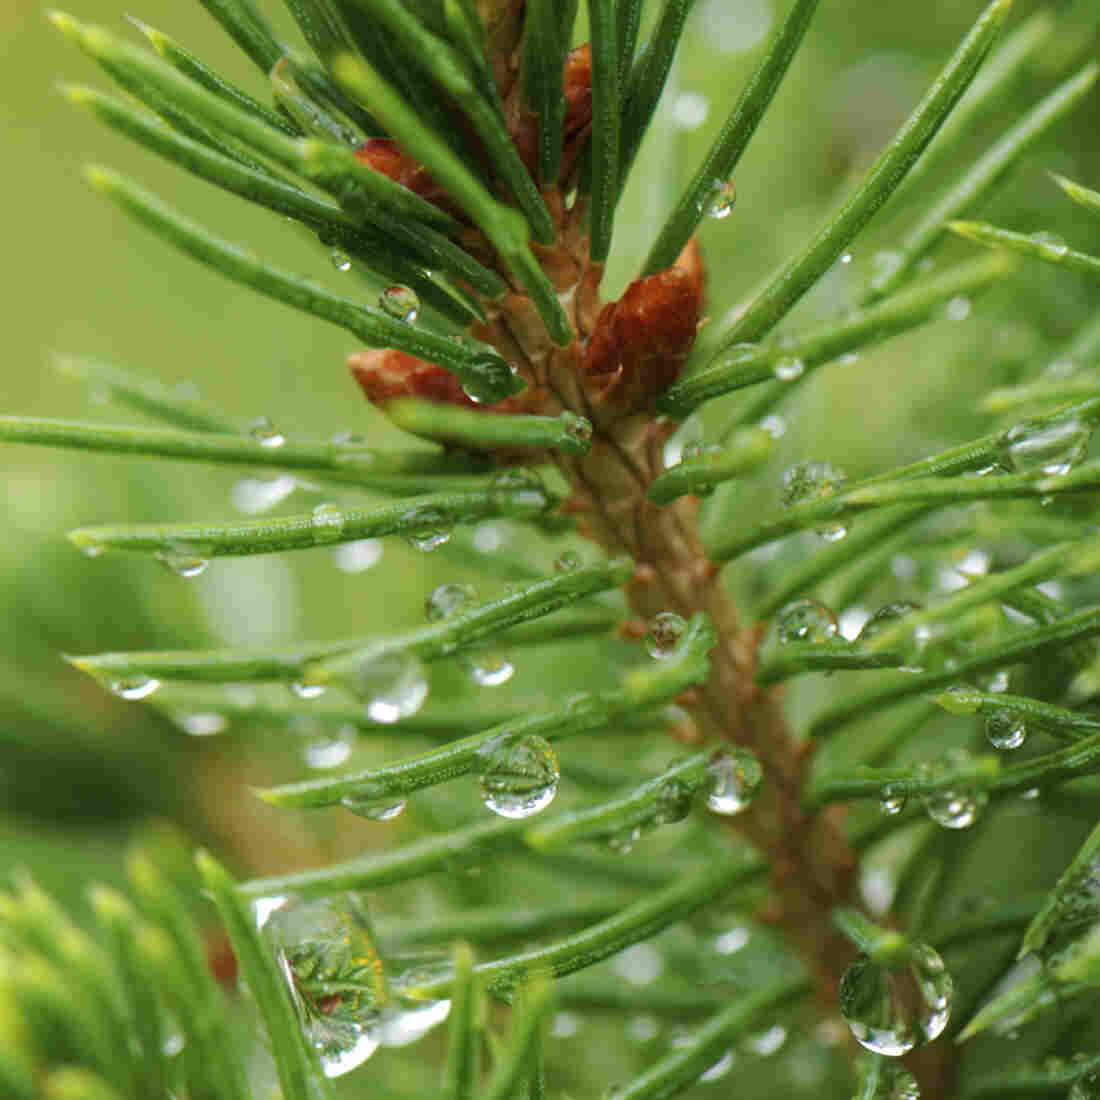 Don't Waste That Christmas Tree: Turn It Into Spruce Beer